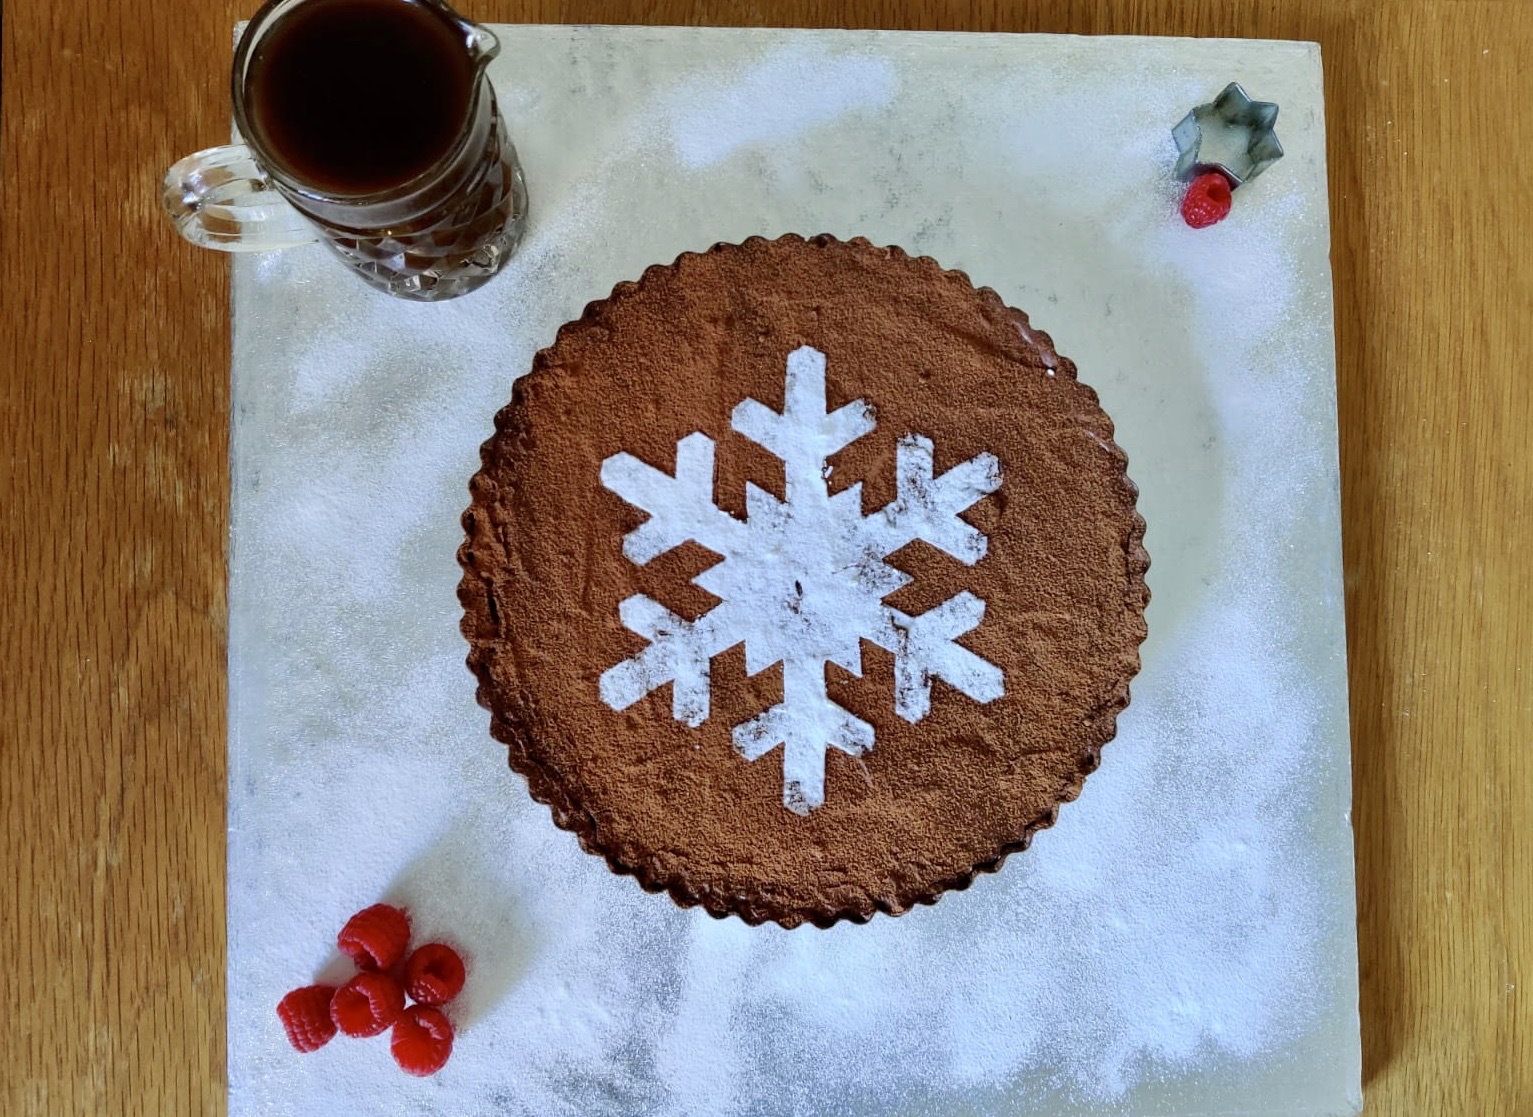 This no-bake Christmas salted caramel and dark chocolate torte is naturally gluten-free, meaning it's suitable for multiple dietary requirements.